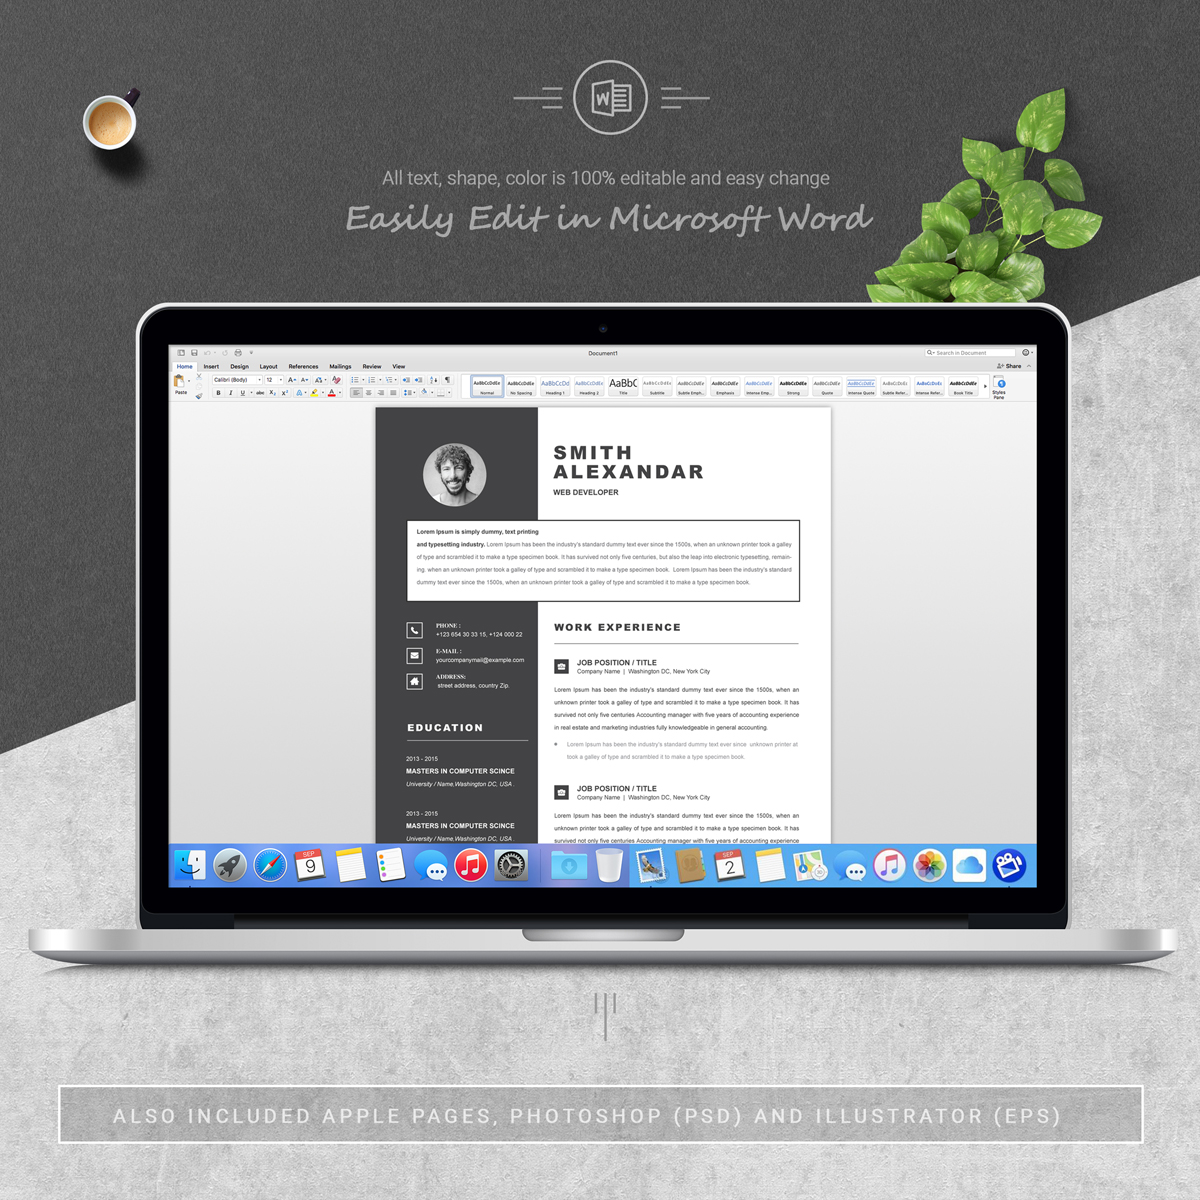 https://s3u.tmimgcdn.com/1860567-1573313193515_05_3%20Pages%20Free%20Resume%20MS%20Word%20File%20Format%20Design%20Template.jpg